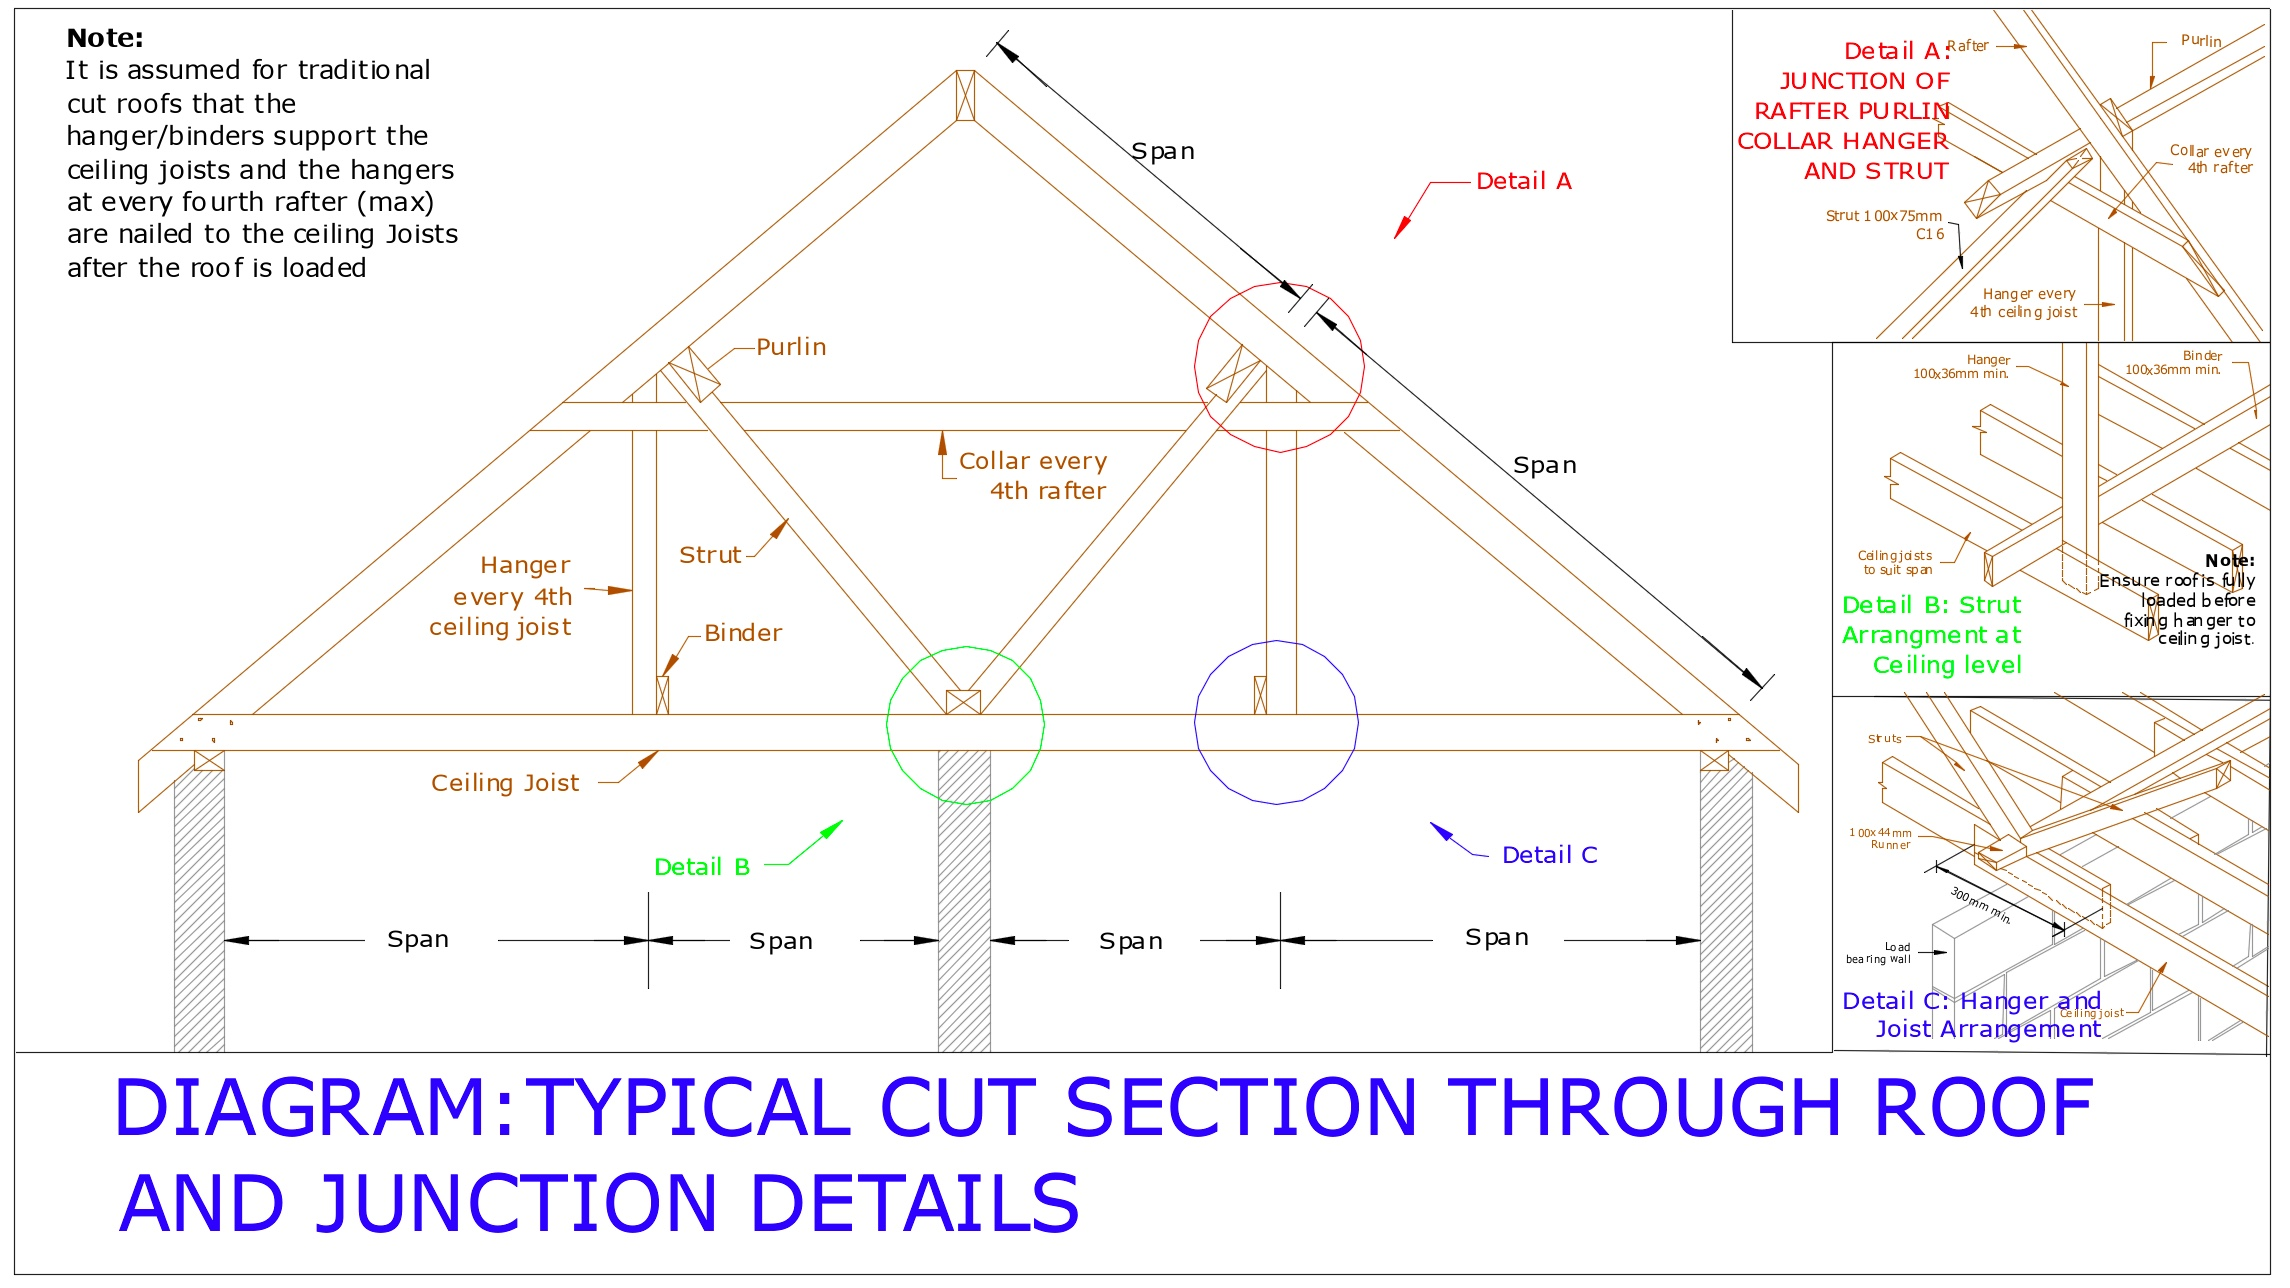 Diagram D78 - Typical cut roof and junction details